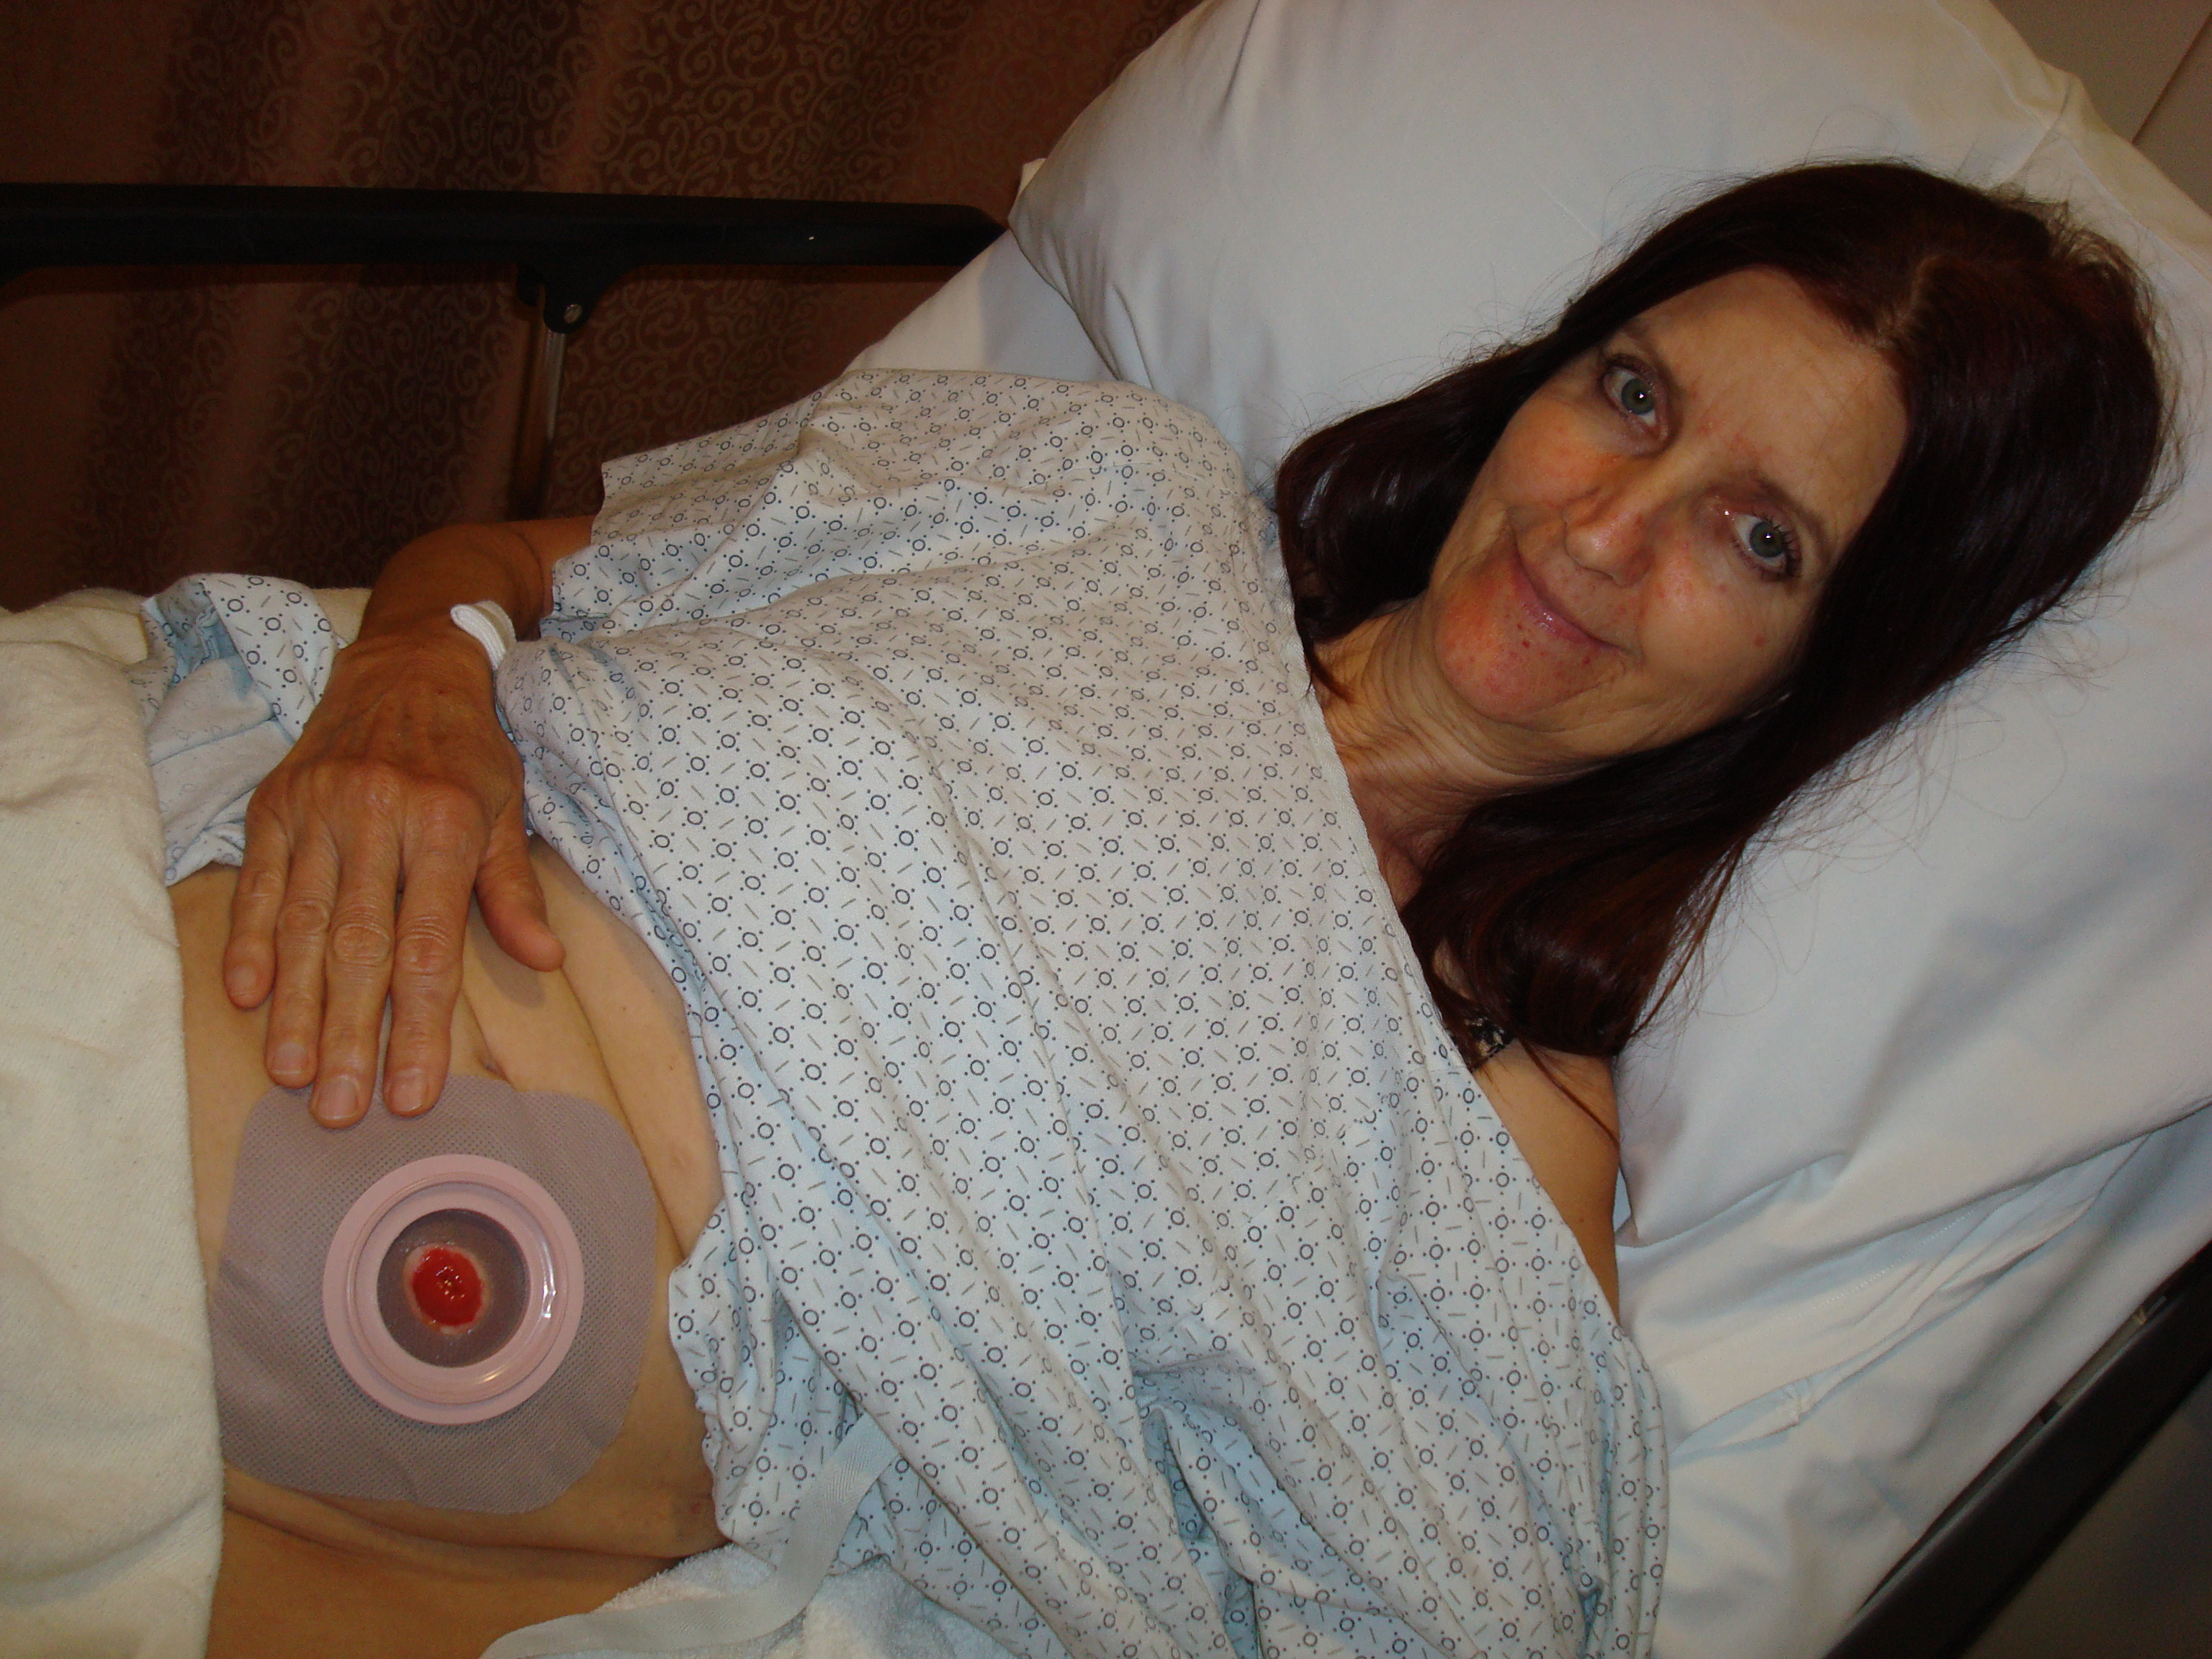 colonoscopy procedure position significantly - photo #18